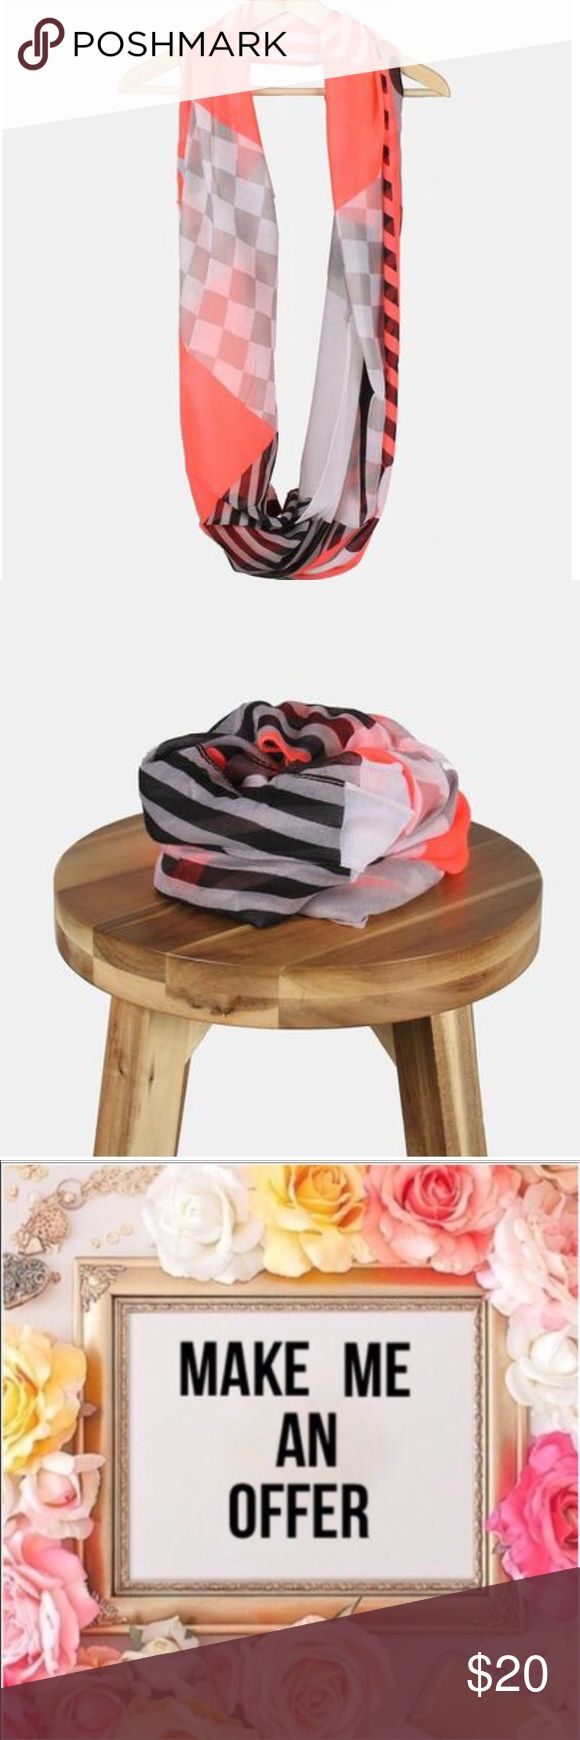 COMINGSOON 💕Polka Dots & Stripes Neon Coral Scarf Adorable lightweight infinity scarf with fun clashing polka dot, stripe and checkered prints. Perfect for adding a bright pop of color to any casual look, all year-round! 💕 NWOT Boutique Accessories Scarves & Wraps